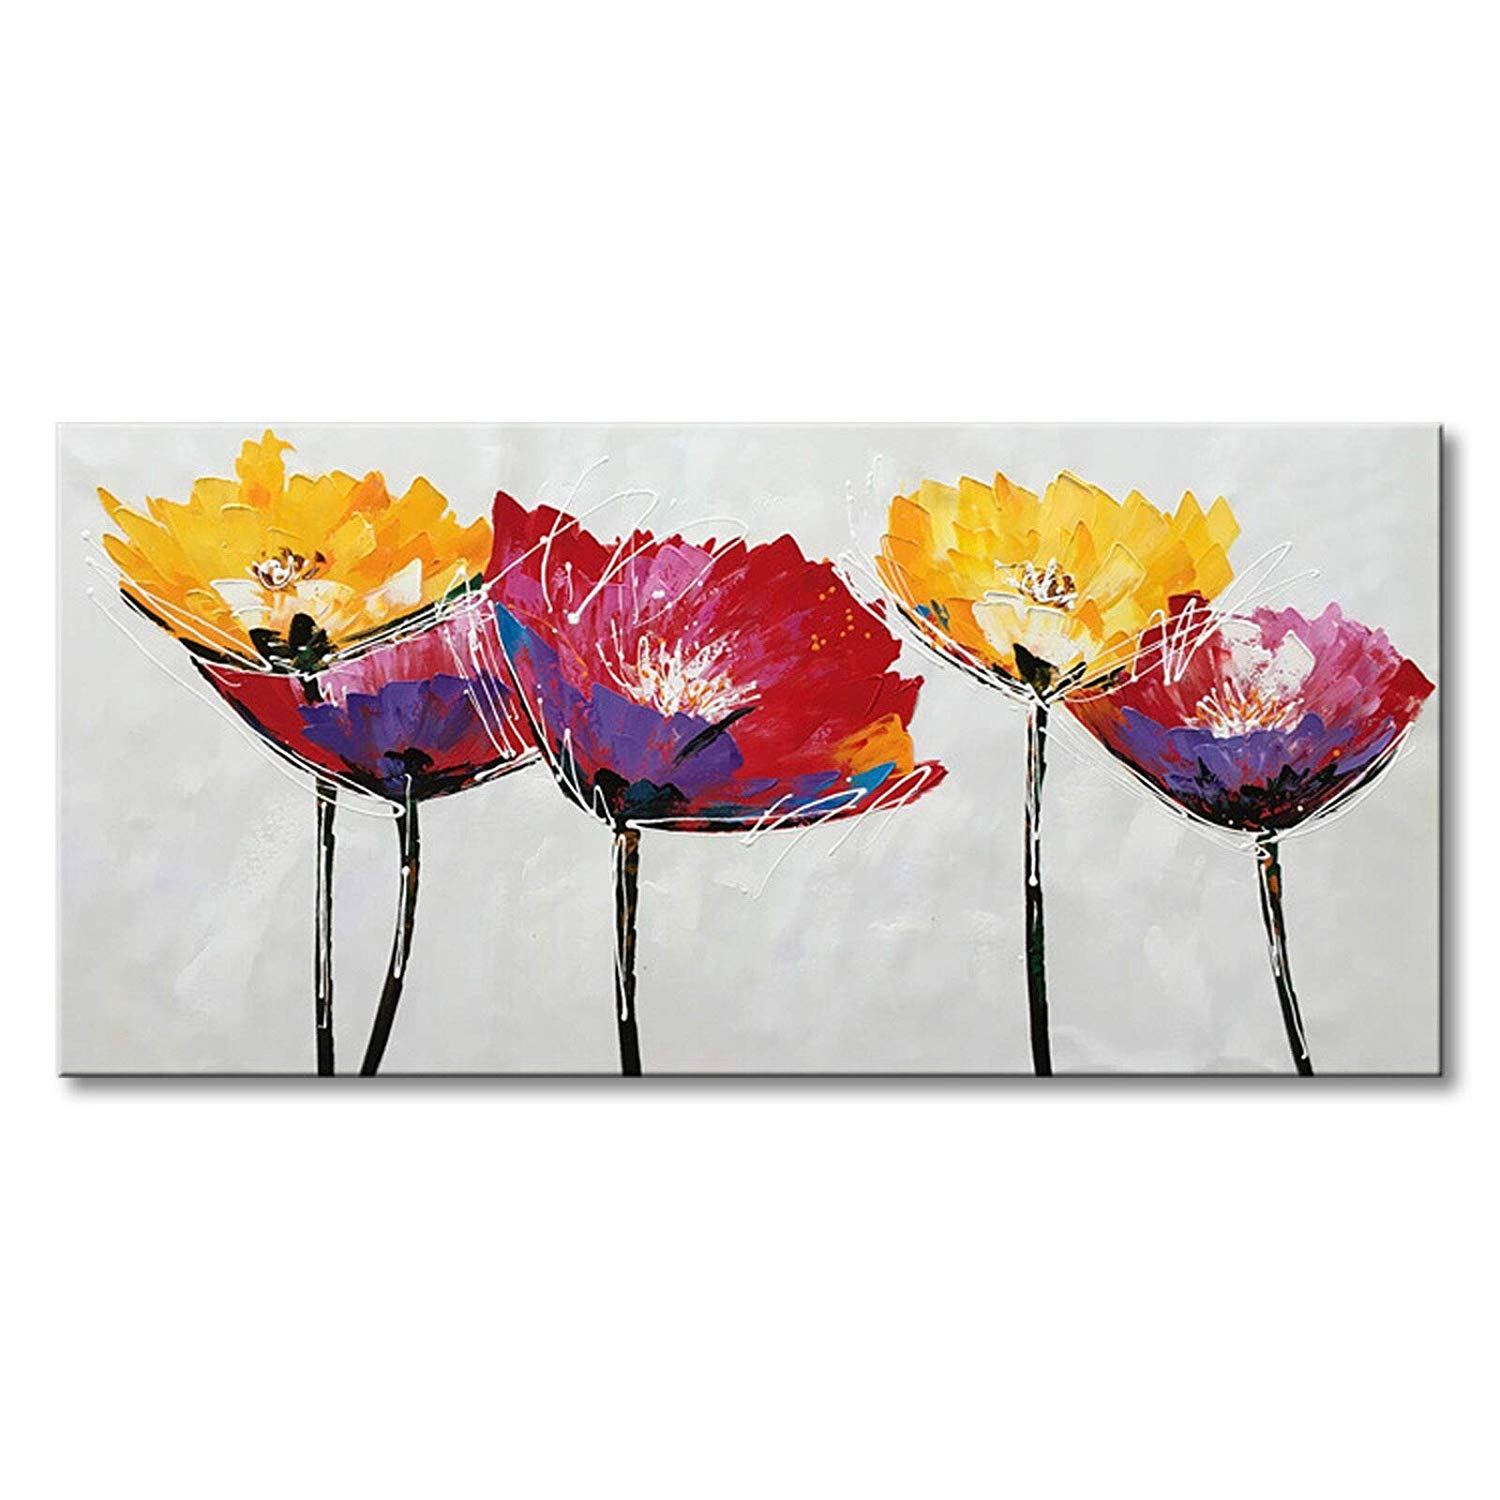 "Seekland Art Hand Painted Modern Flower Oil Painting on Canvas Abstract Wall Art Colorful Floral Decor Hanging Contemporary Artwork Stretched Picture (Framed 48"" W x 24"" H)"